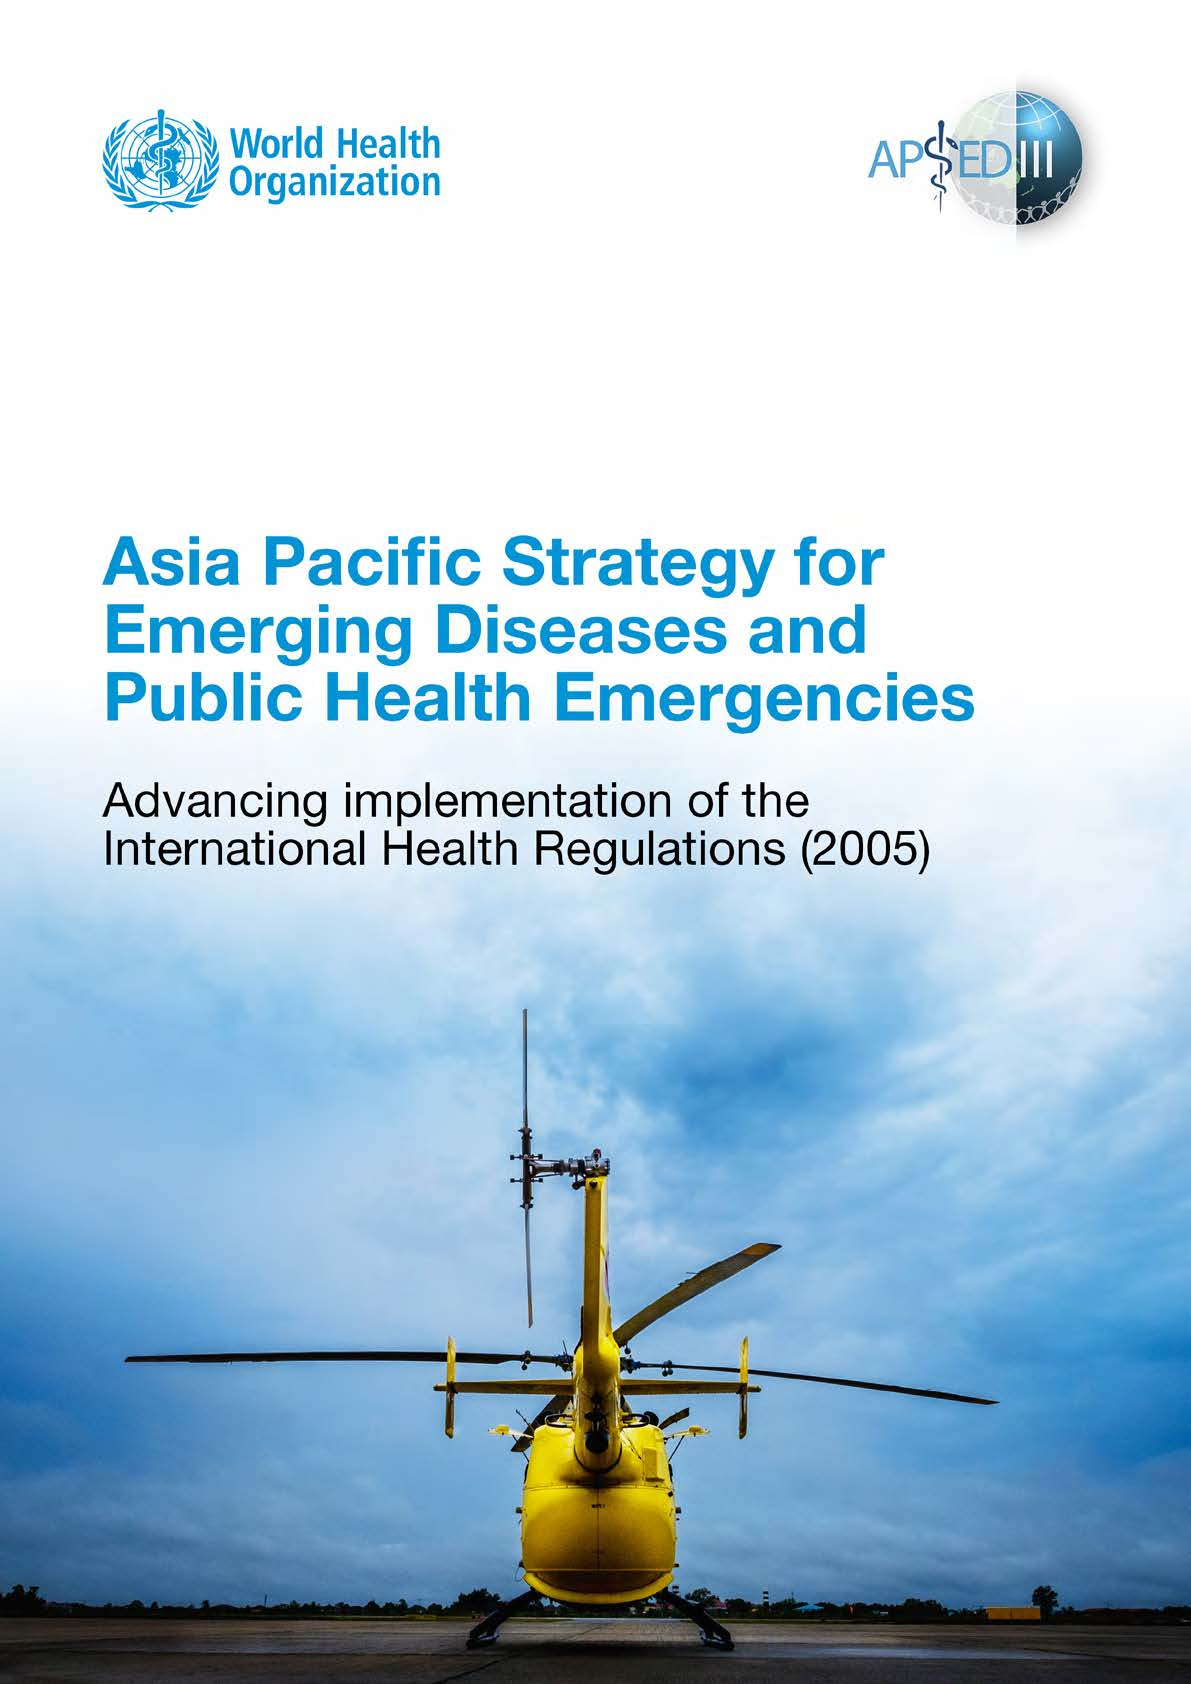 Asia Pacific strategy for emerging diseases and public health emergencies (APSED III) : advancing implementation of the International Health Regulations (2005) : working together towards health security